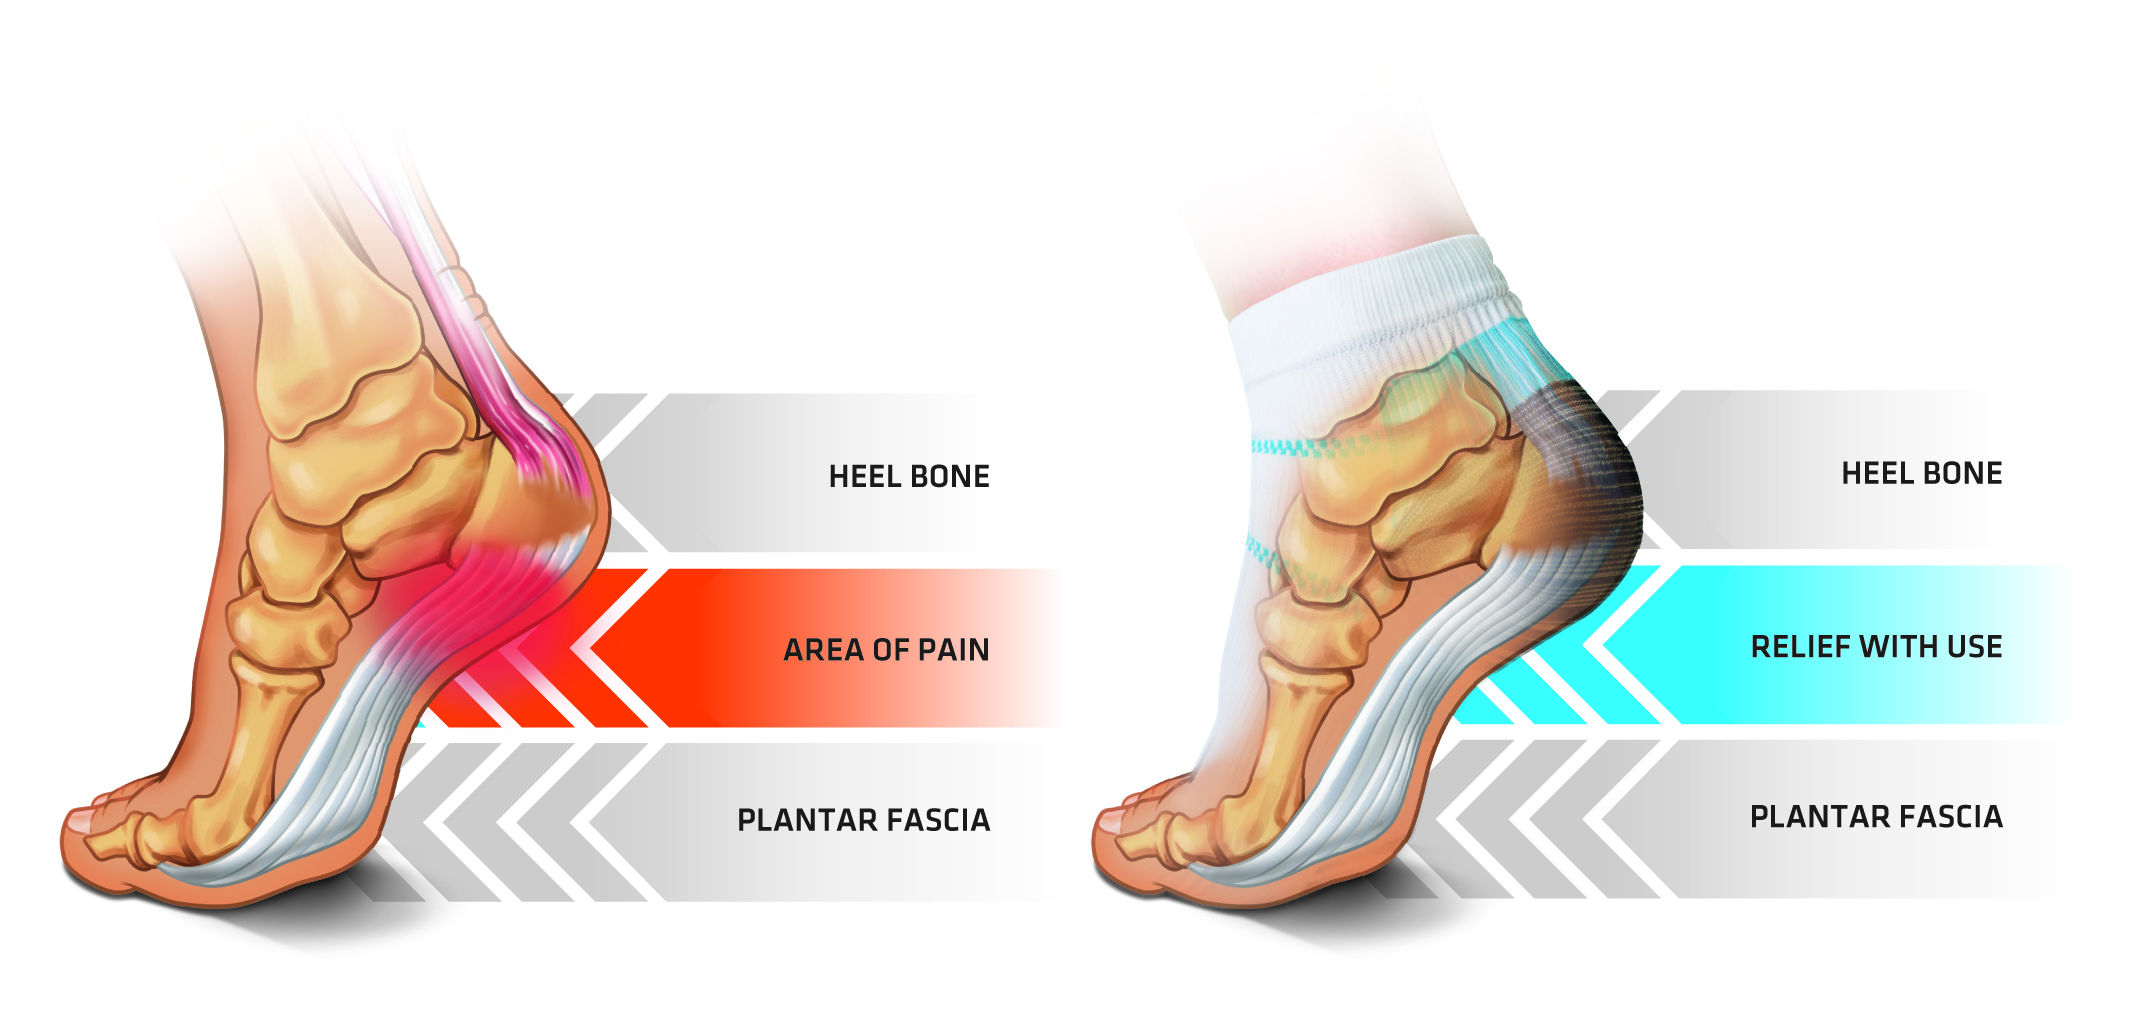 planter infographic better facitis plantarfasciitisinfographic living plantar fasciitis